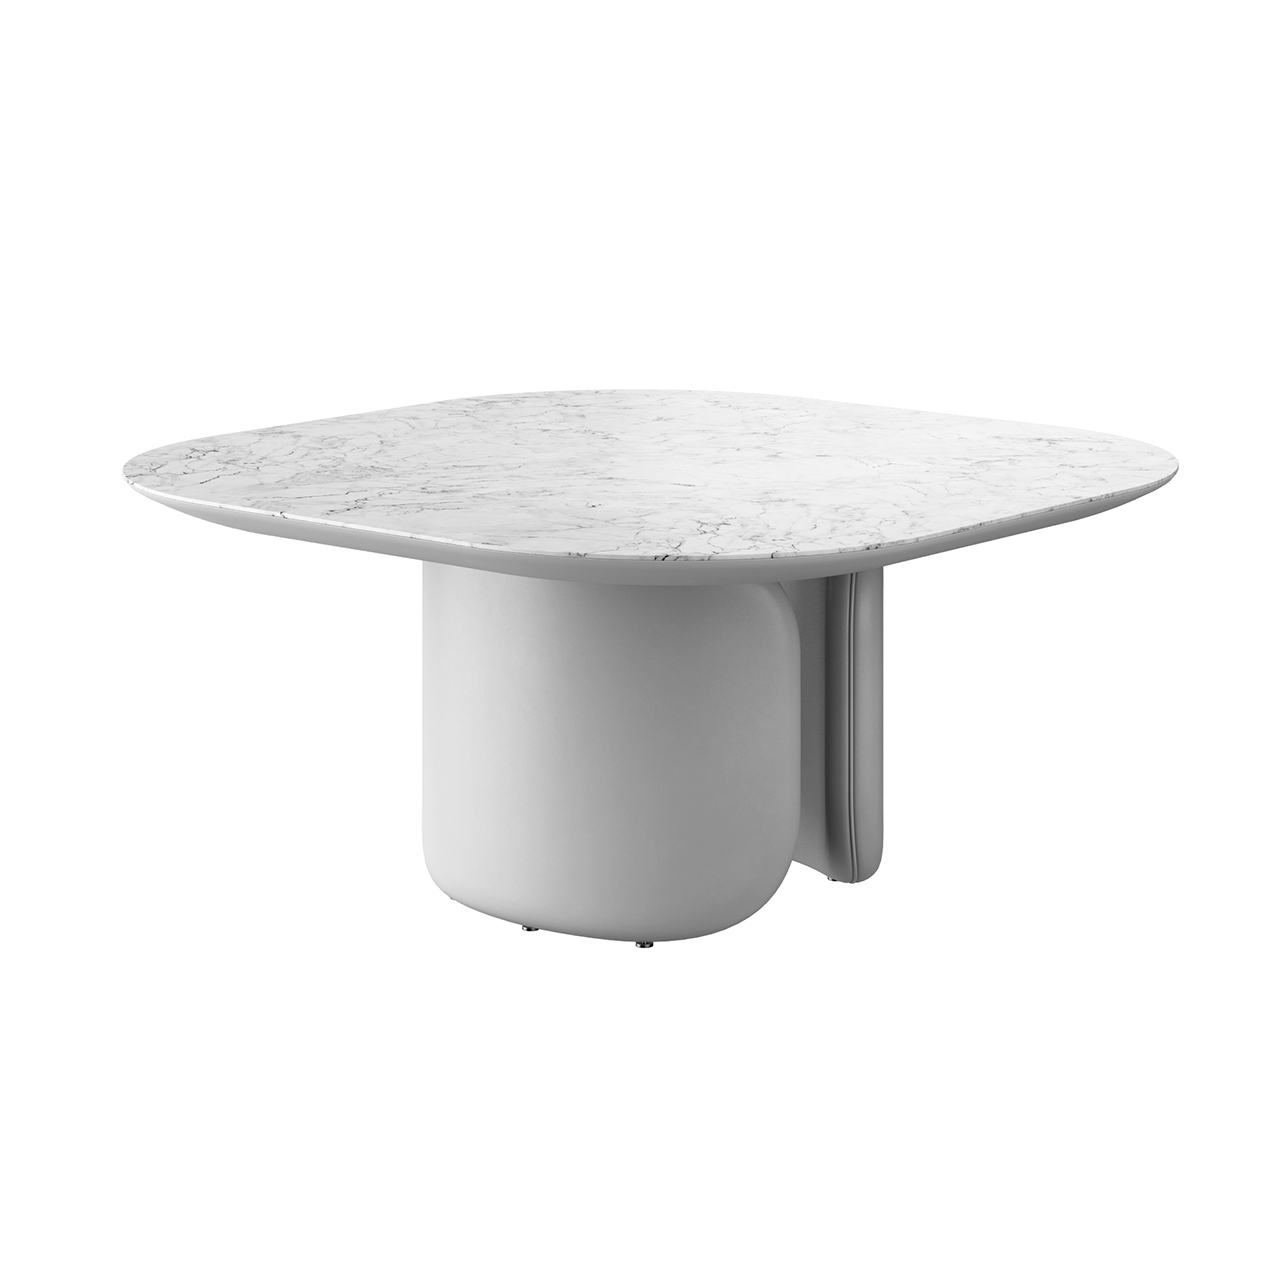 Elinor Square Table by Pedrali